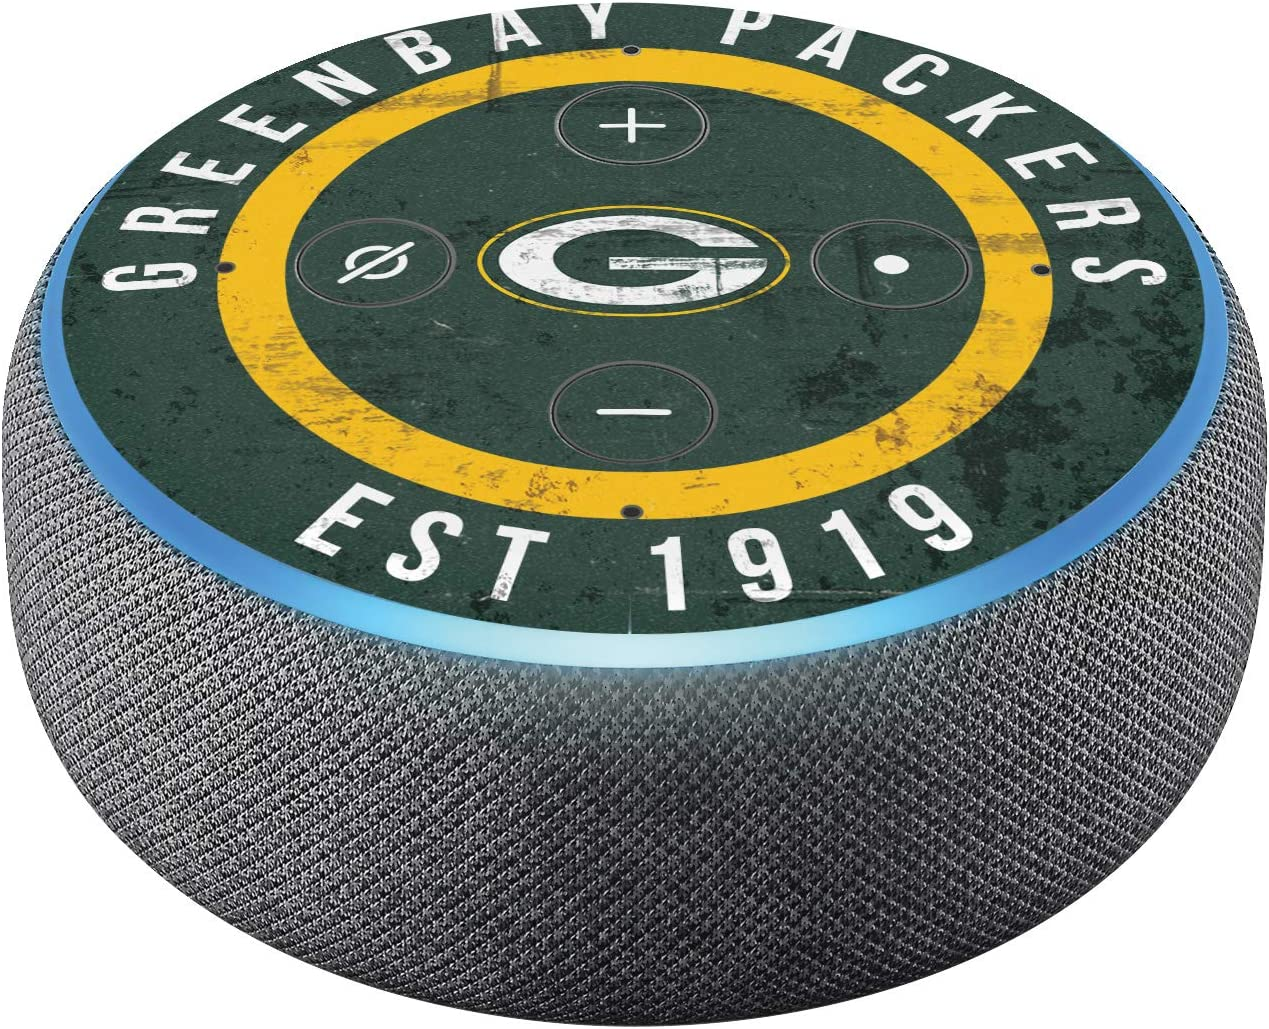 Head Case Designs Officially Licensed NFL Team Colour Distressed Green Bay Packers Matte Vinyl Sticker Skin Decal Cover Compatible with Amazon Echo Dot (3rd Gen)